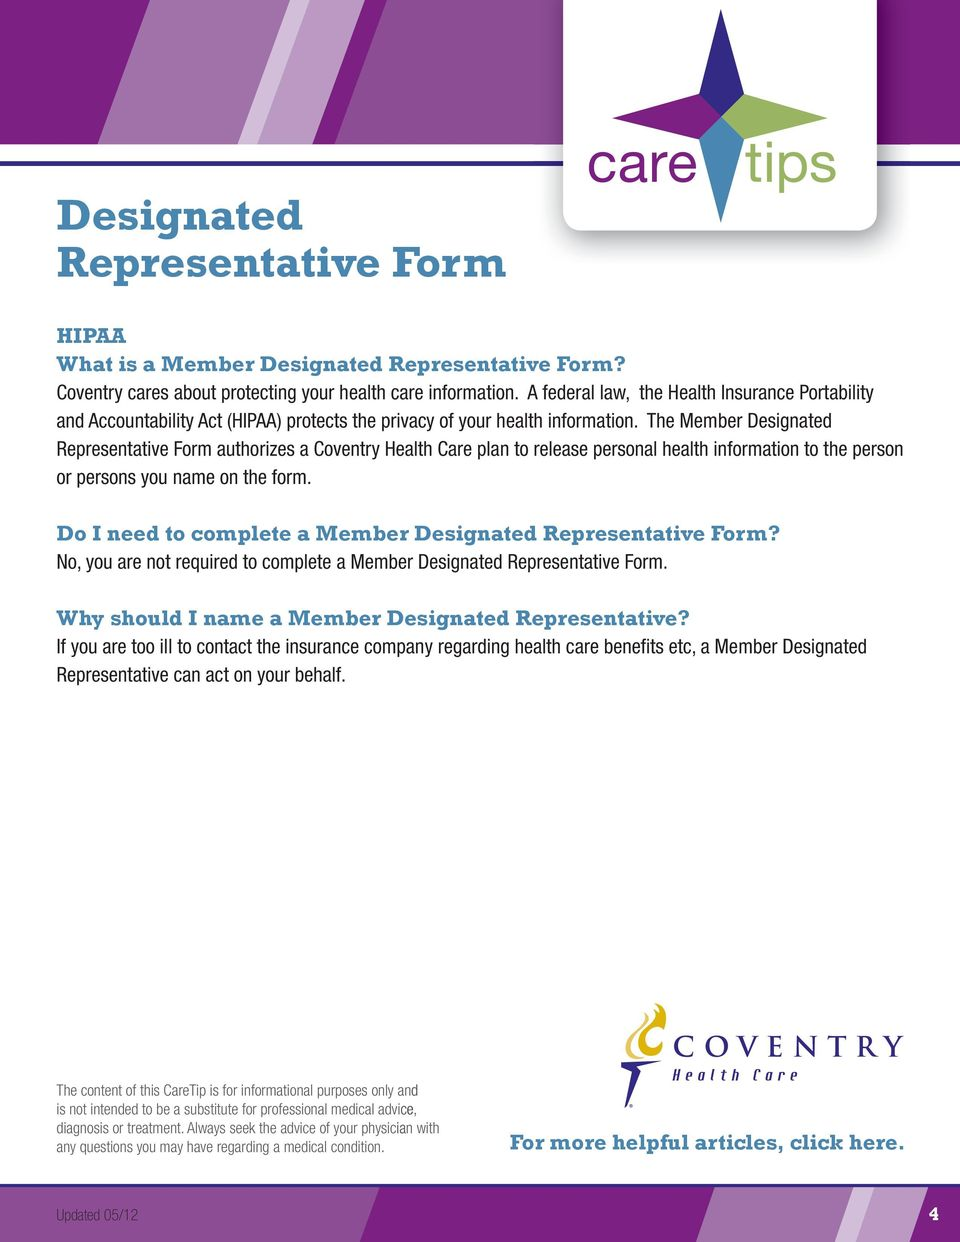 The Member Designated Representative Form authorizes a Coventry Health Care plan to release personal health information to the person or persons you name on the form.